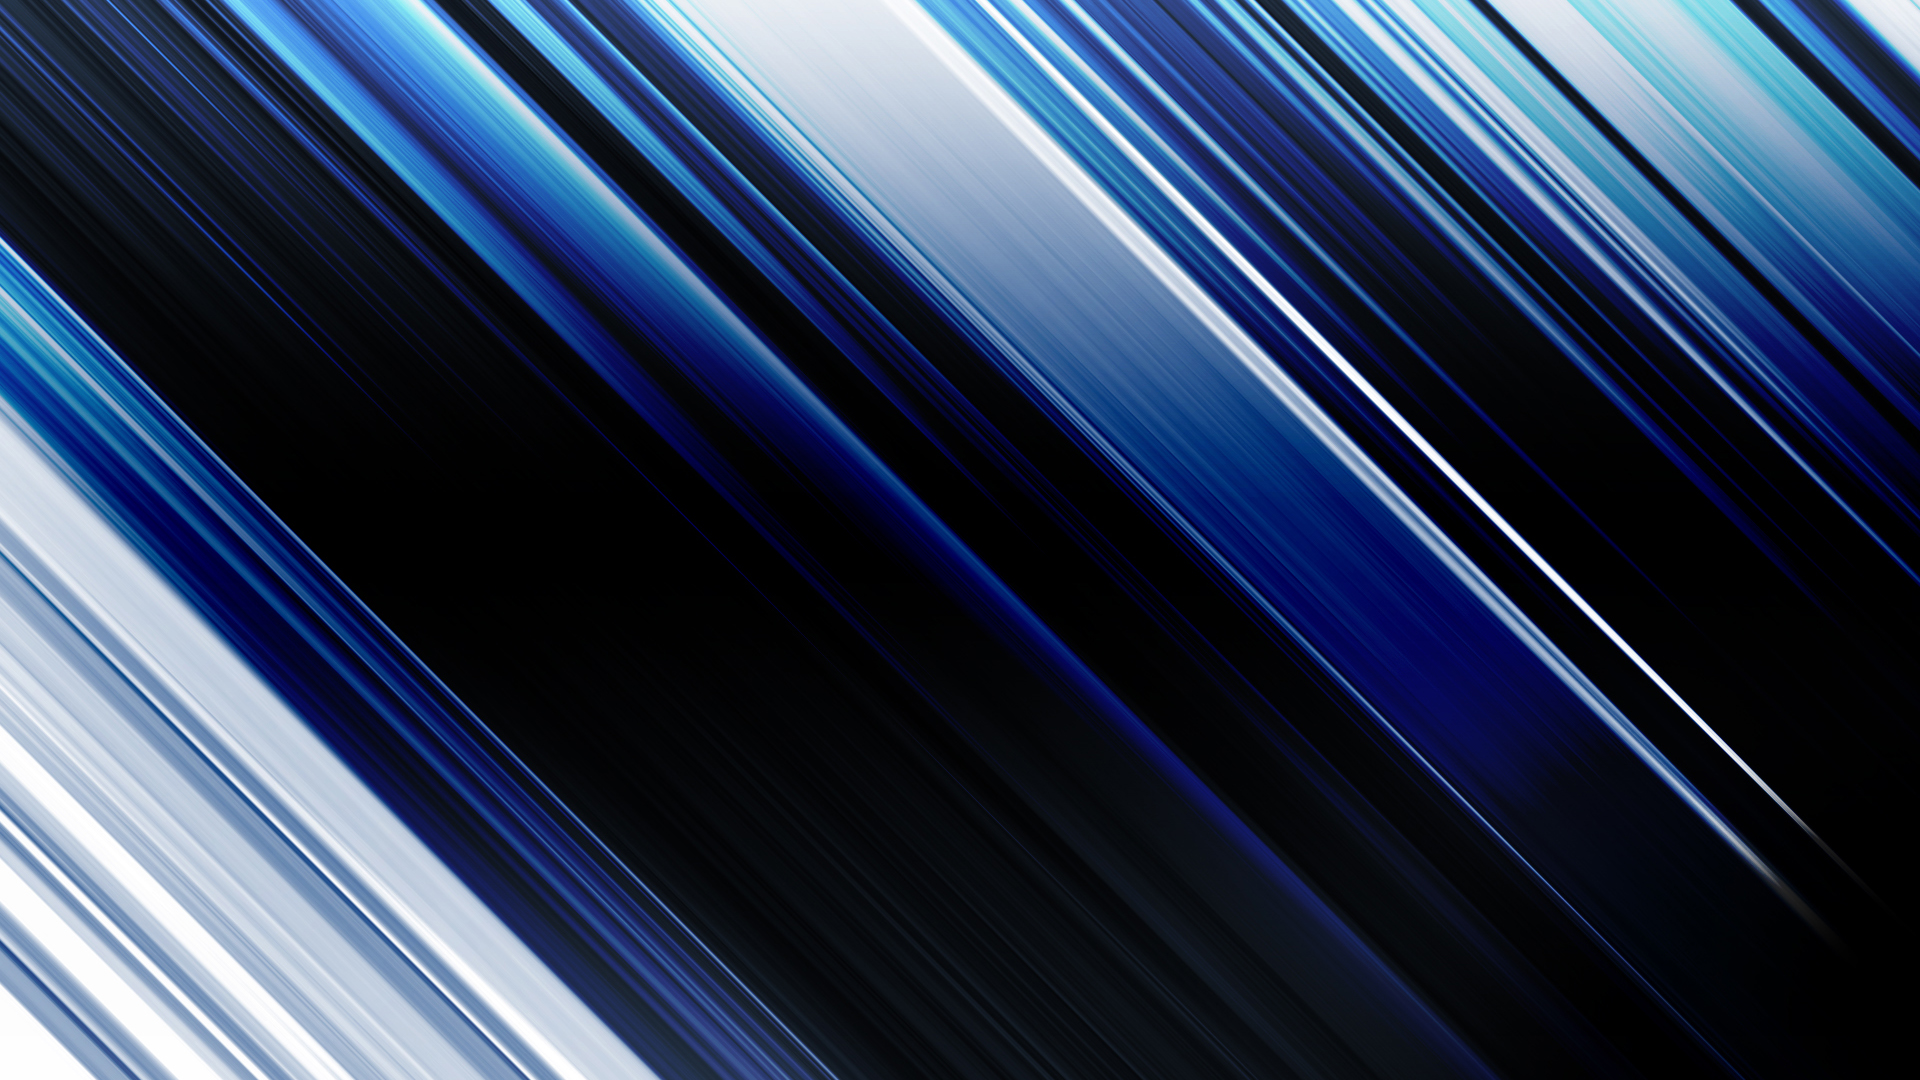 Abstract Wallpaper Laptop Free Download